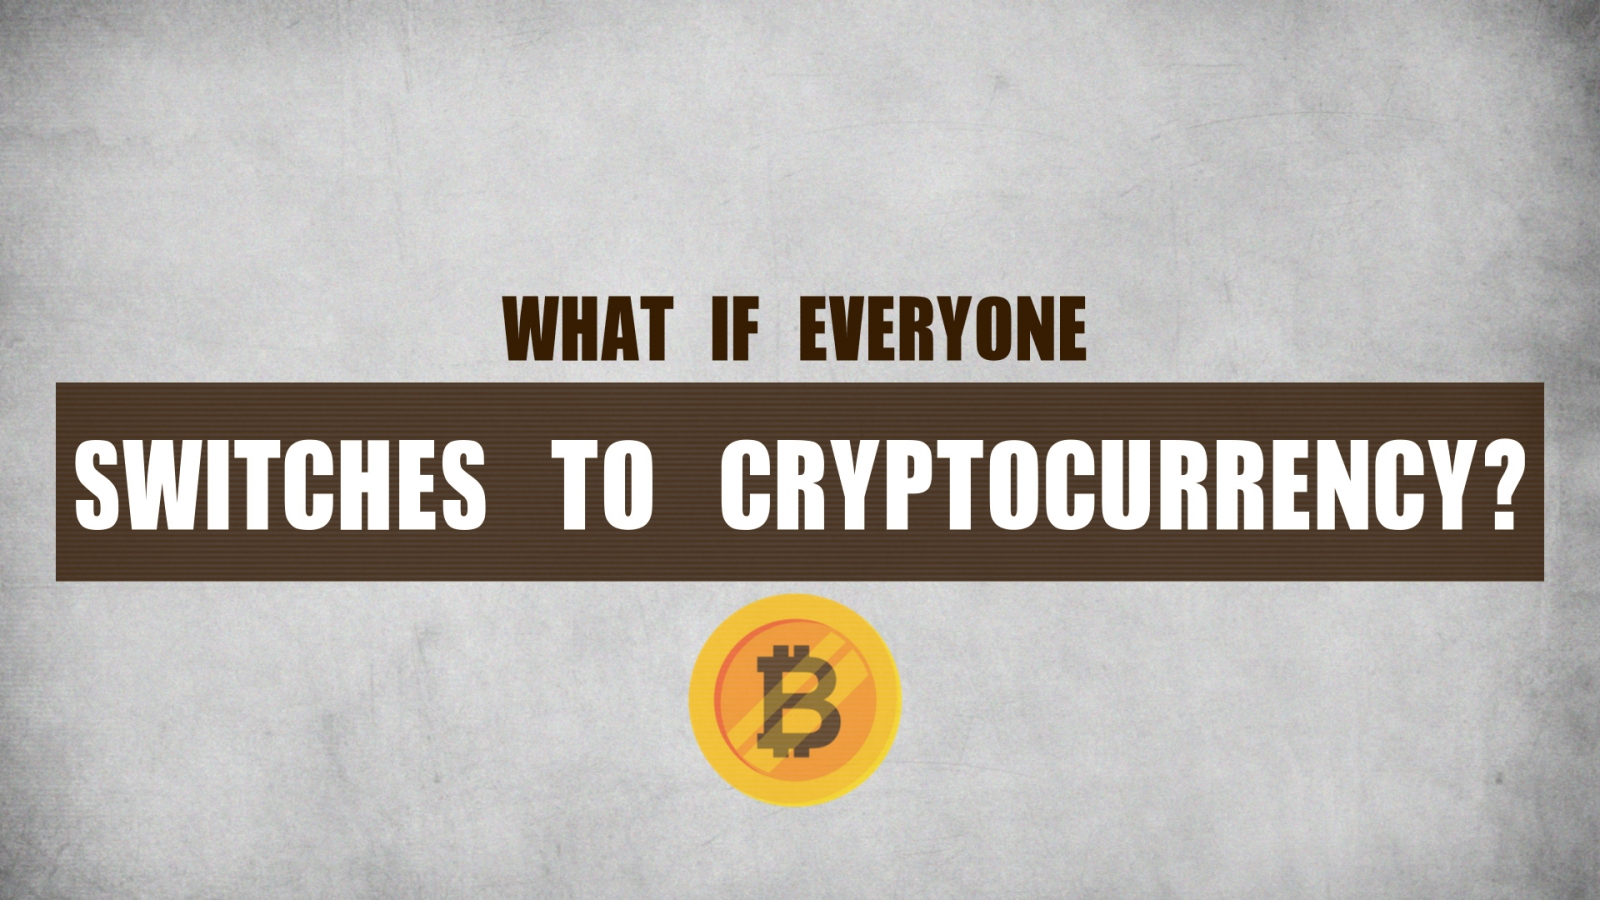 What If Everyone Switches To Cryptocurrency?